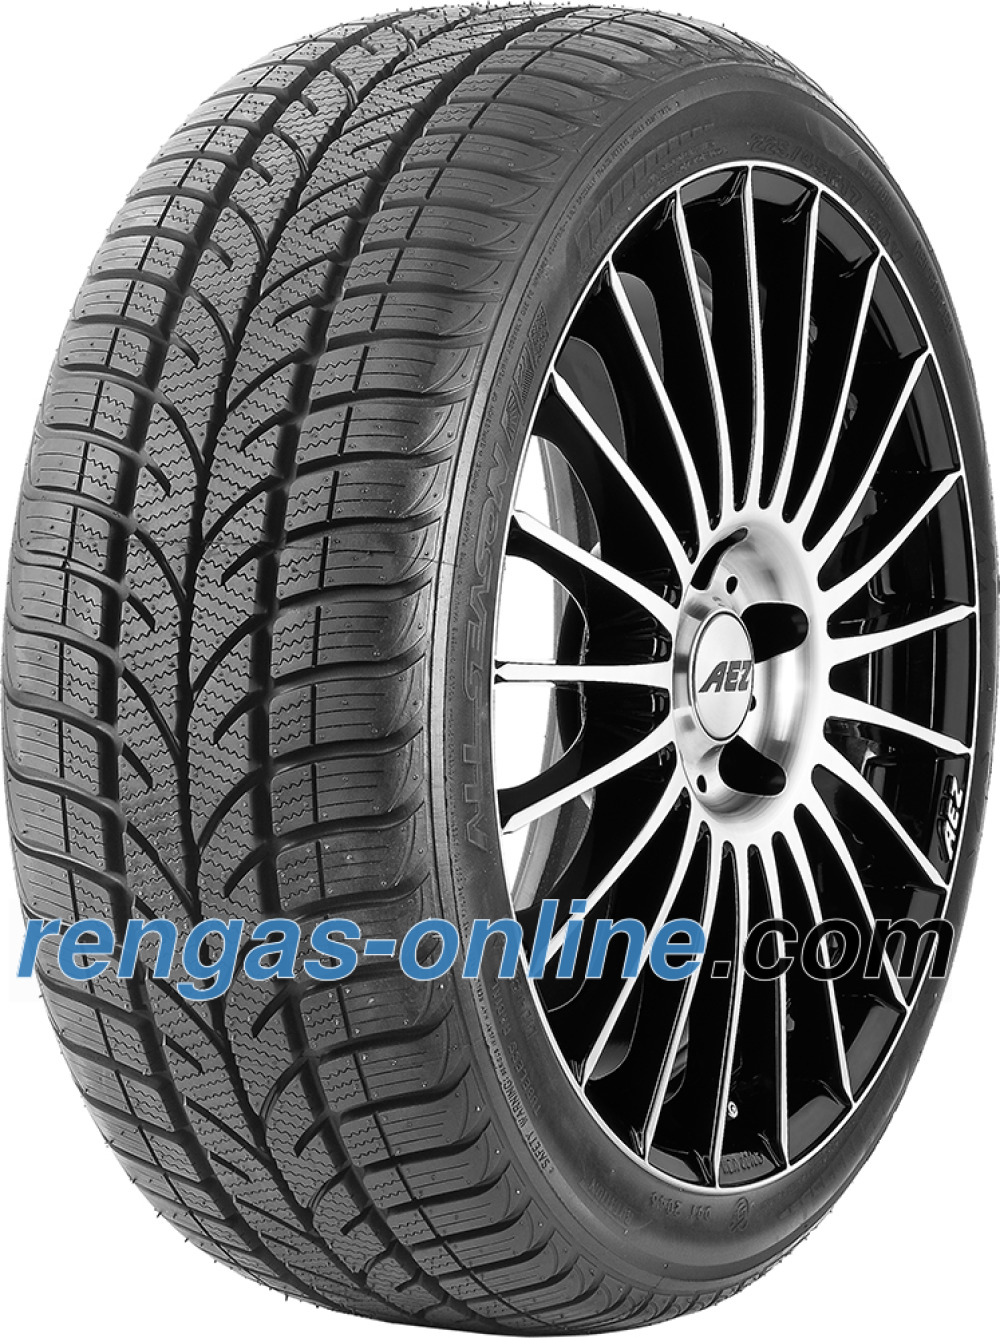 maxxis-ma-as-17565-r13-80t